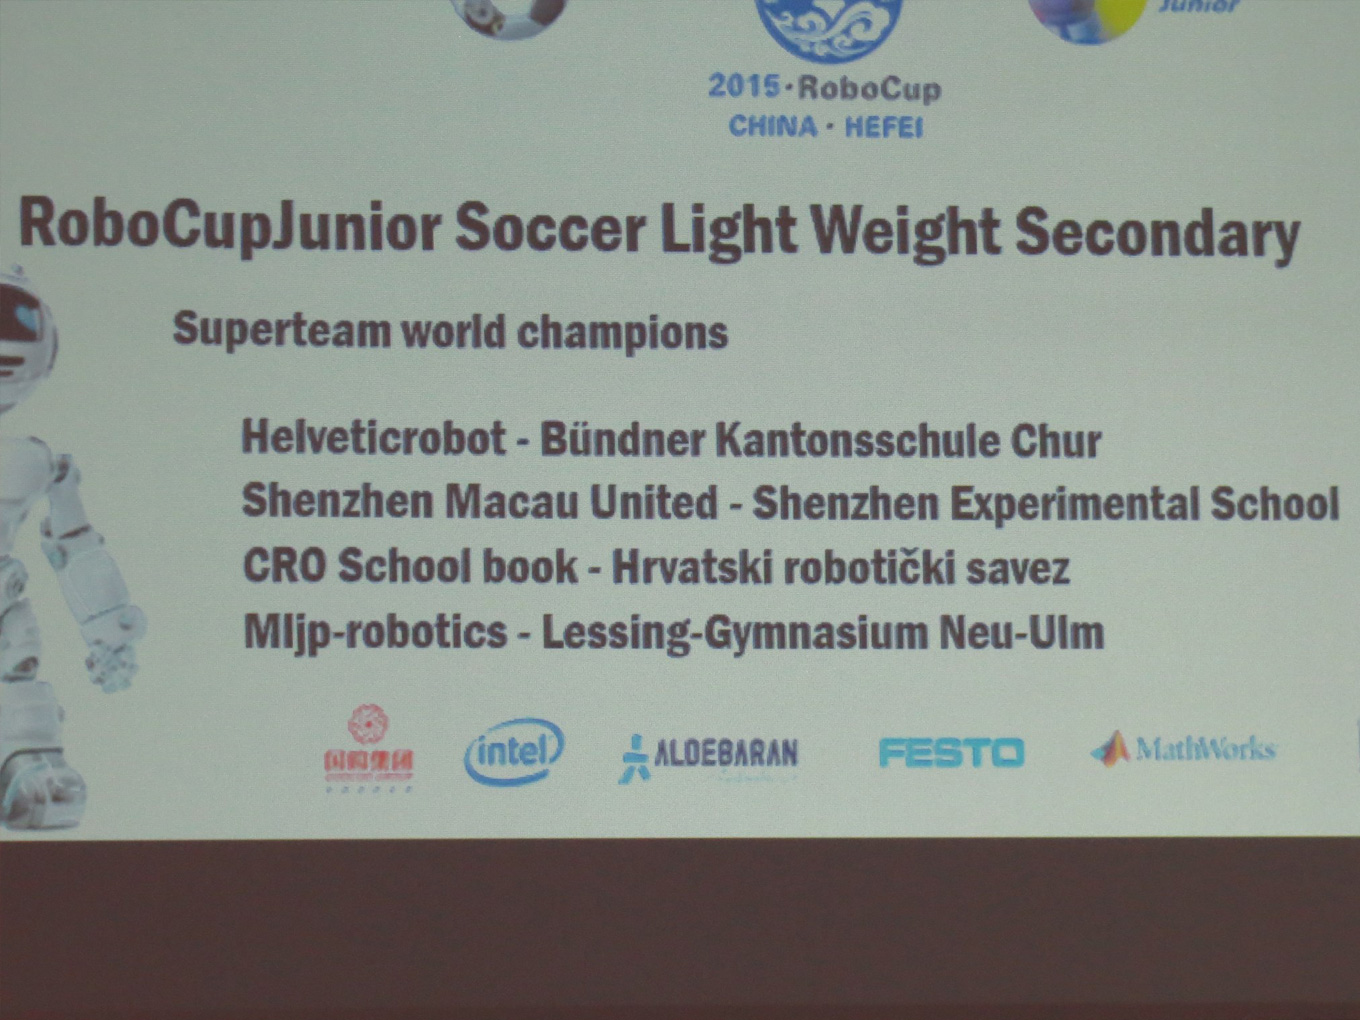 Soccer Light Weight Super Teams